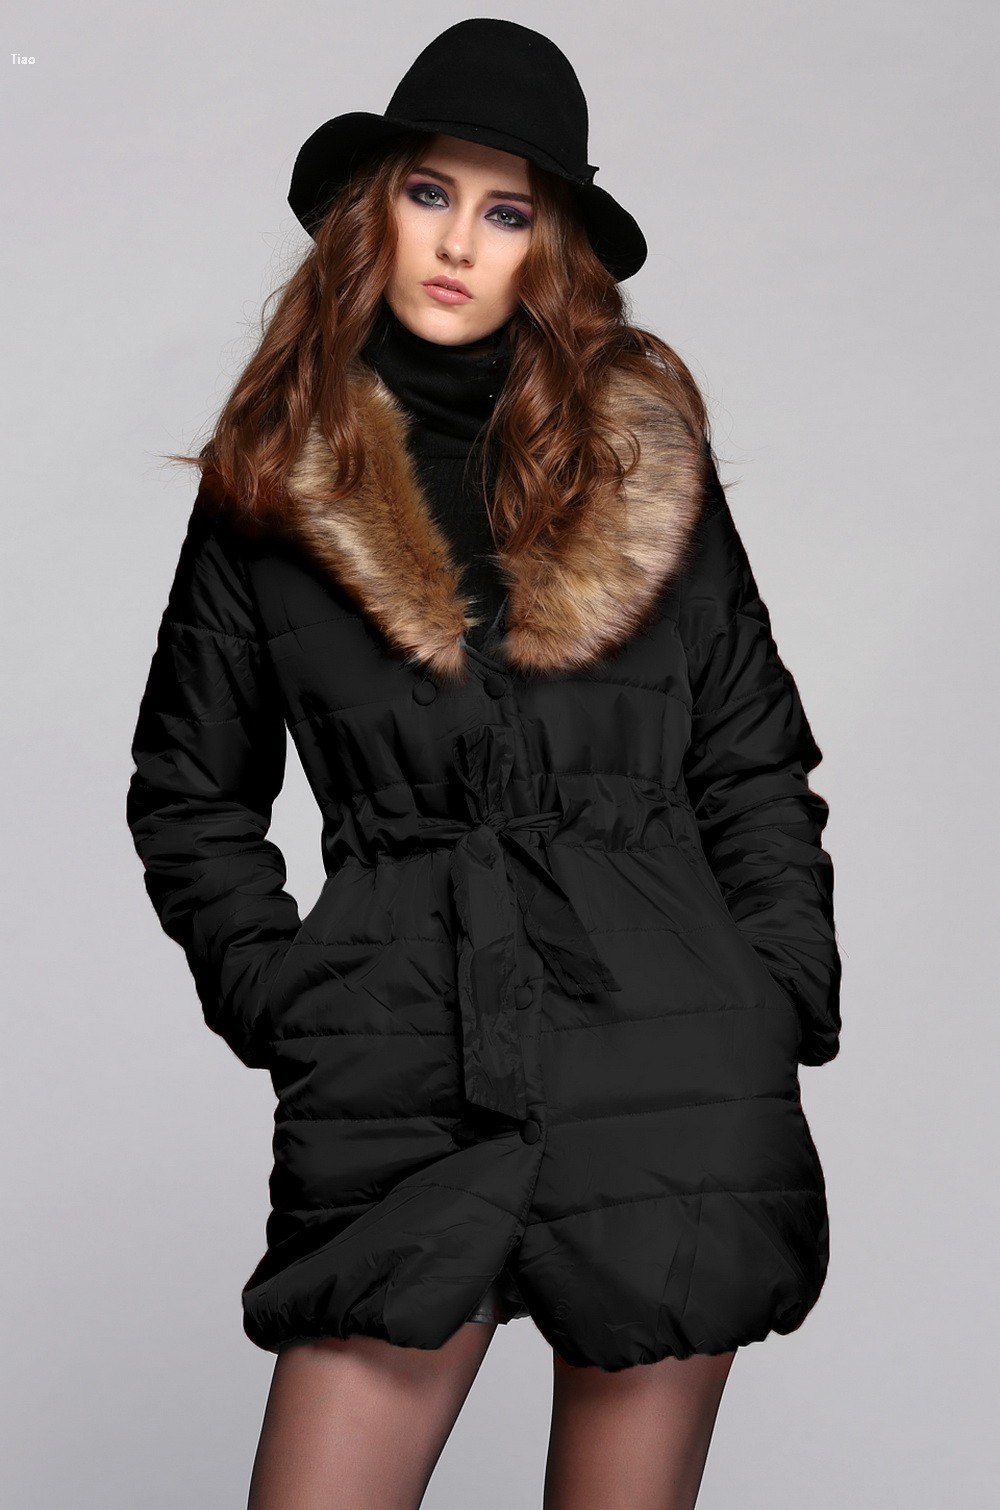 Elegant Women's Winter Coat Double Breasted Raccoon Fur Collar Warm Down Jacket(China (Mainland))